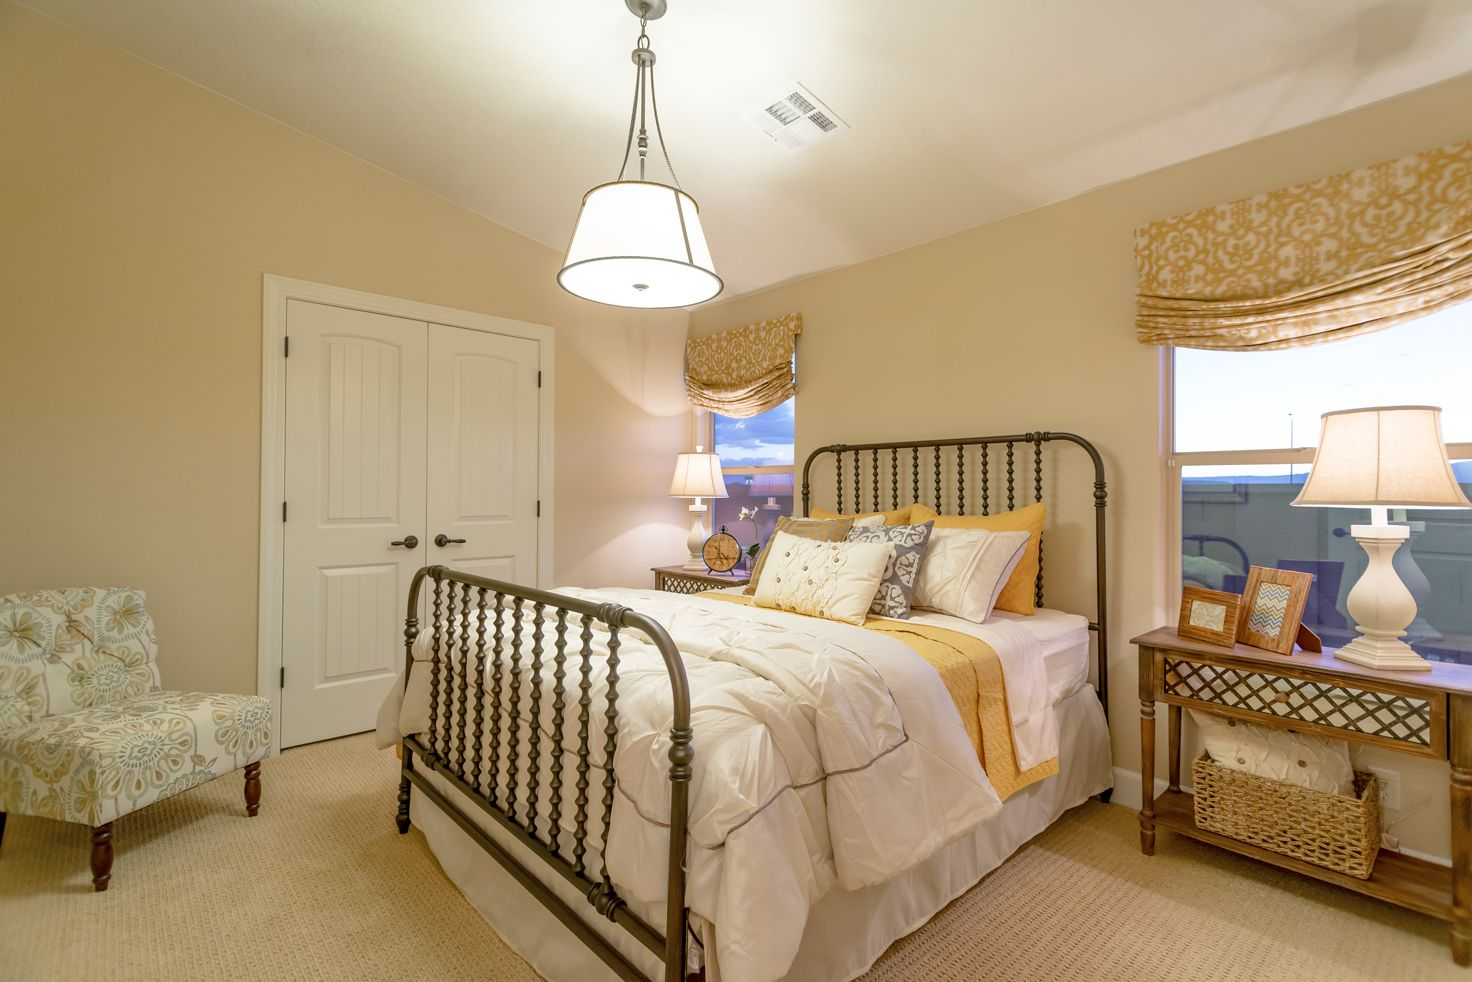 Bedroom featured in the Arroyo Plan 1872 By Ence Homes in St. George, UT